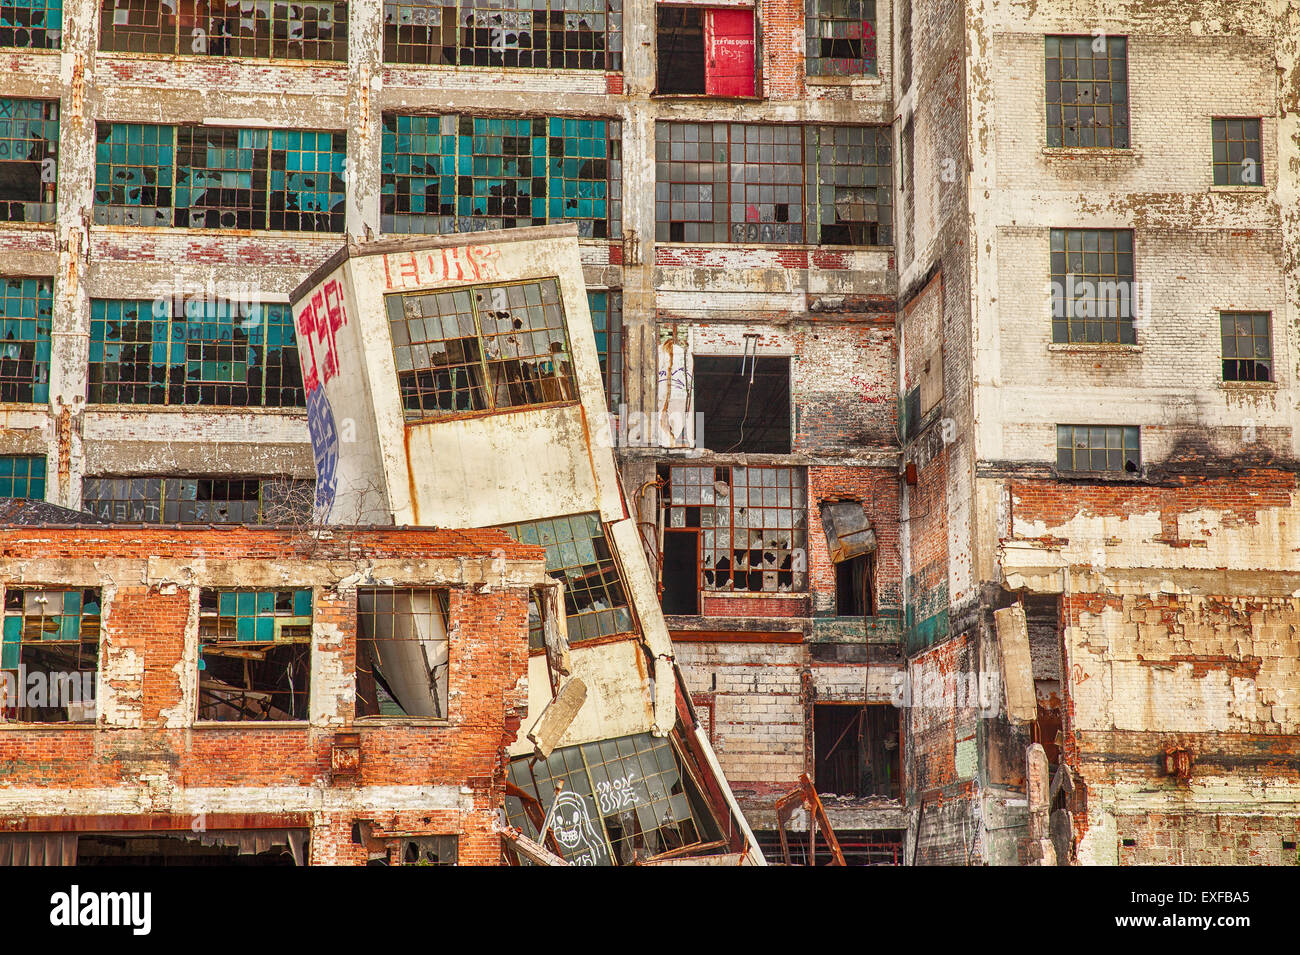 Urban Decay At Detroit Factory Stock Photo Alamy